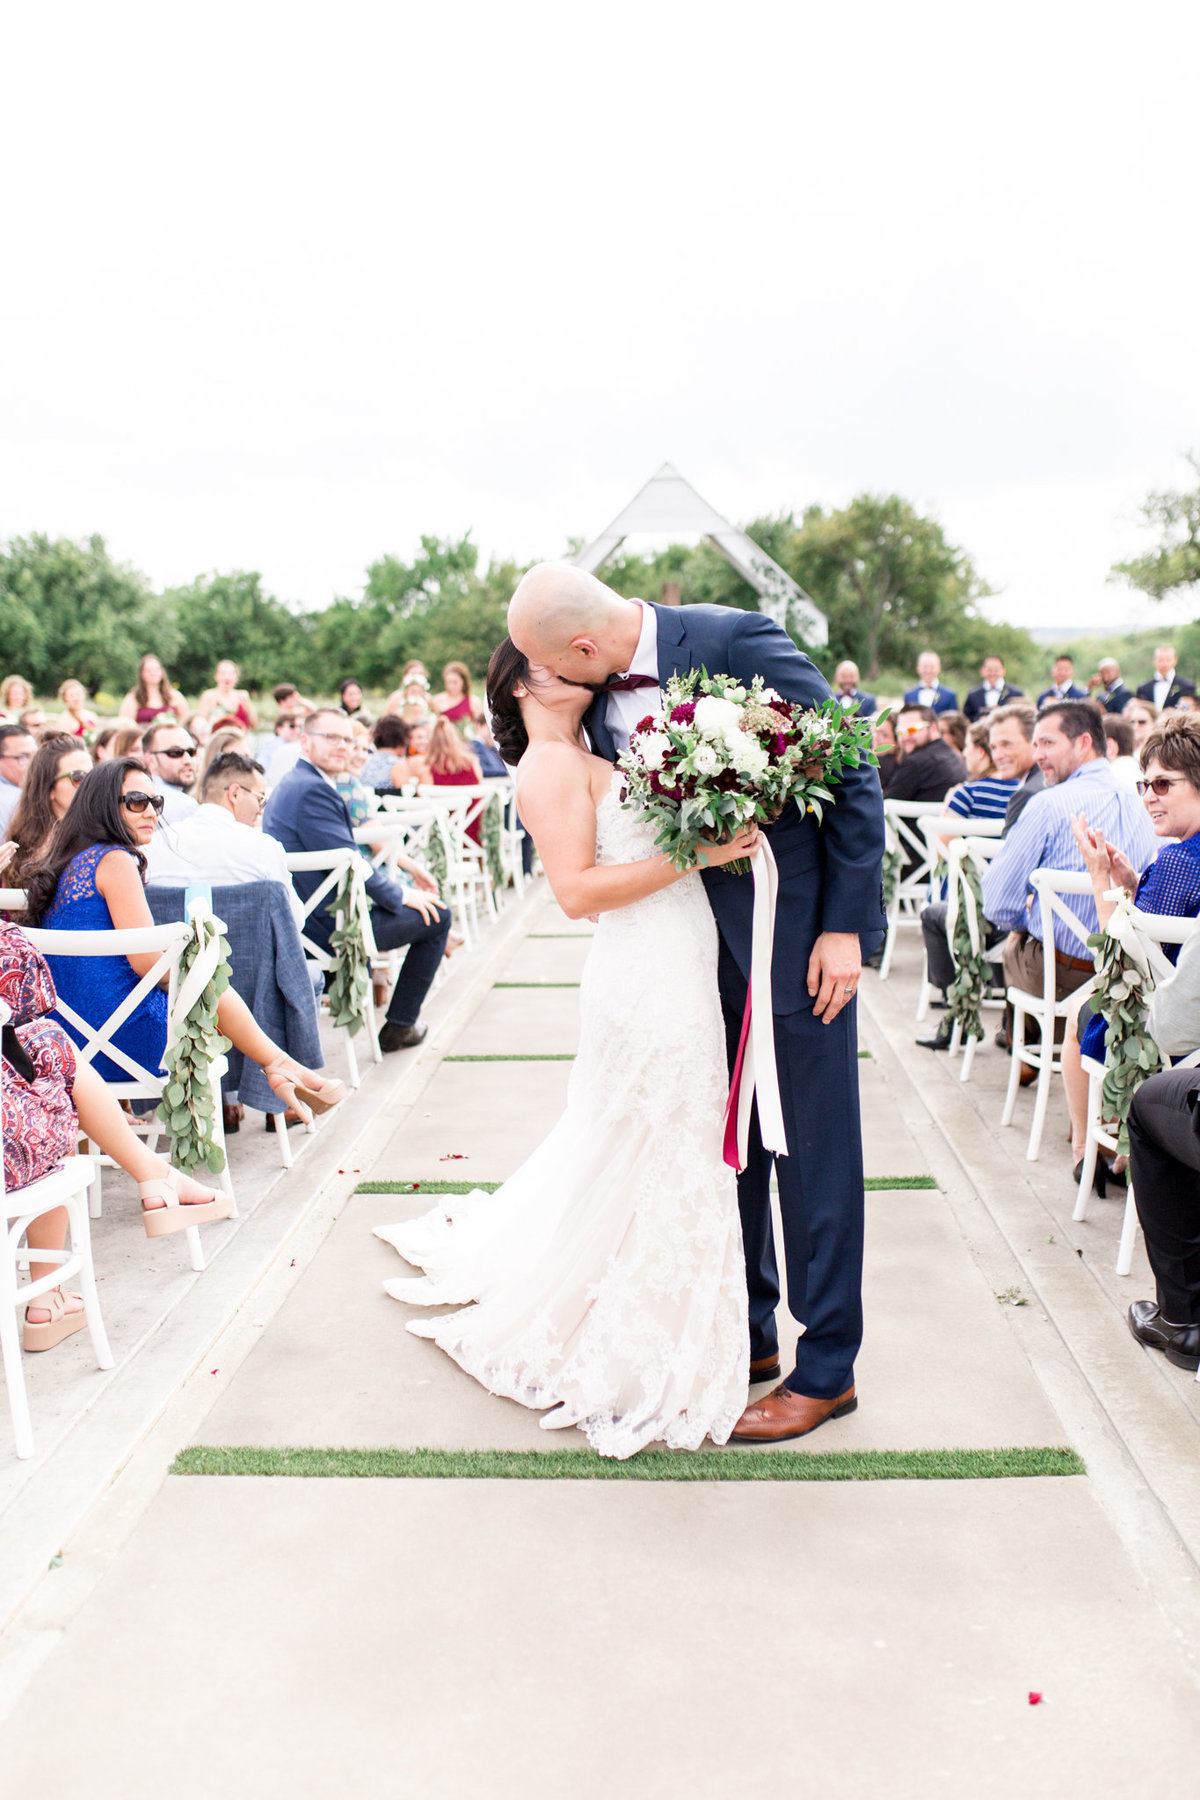 Nick & Sam Wedding | The Nest at Ruth Farms | Sami Kathryn Photography | Dallas Wedding Photographer-135